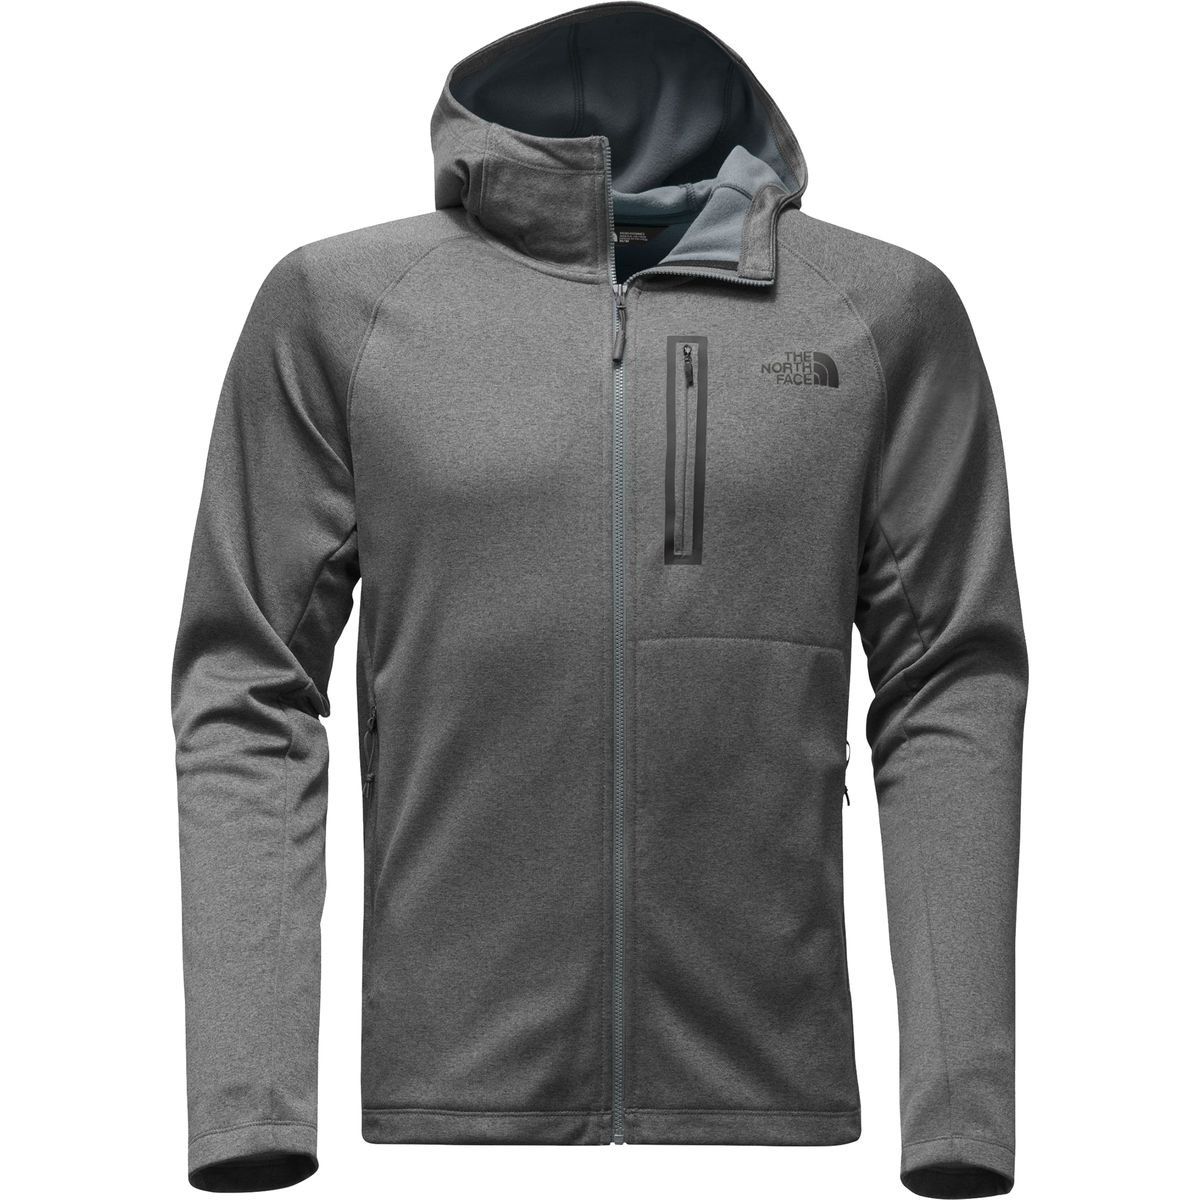 THE NORTH FACE Men's Canyonlands Hoodie Fleece